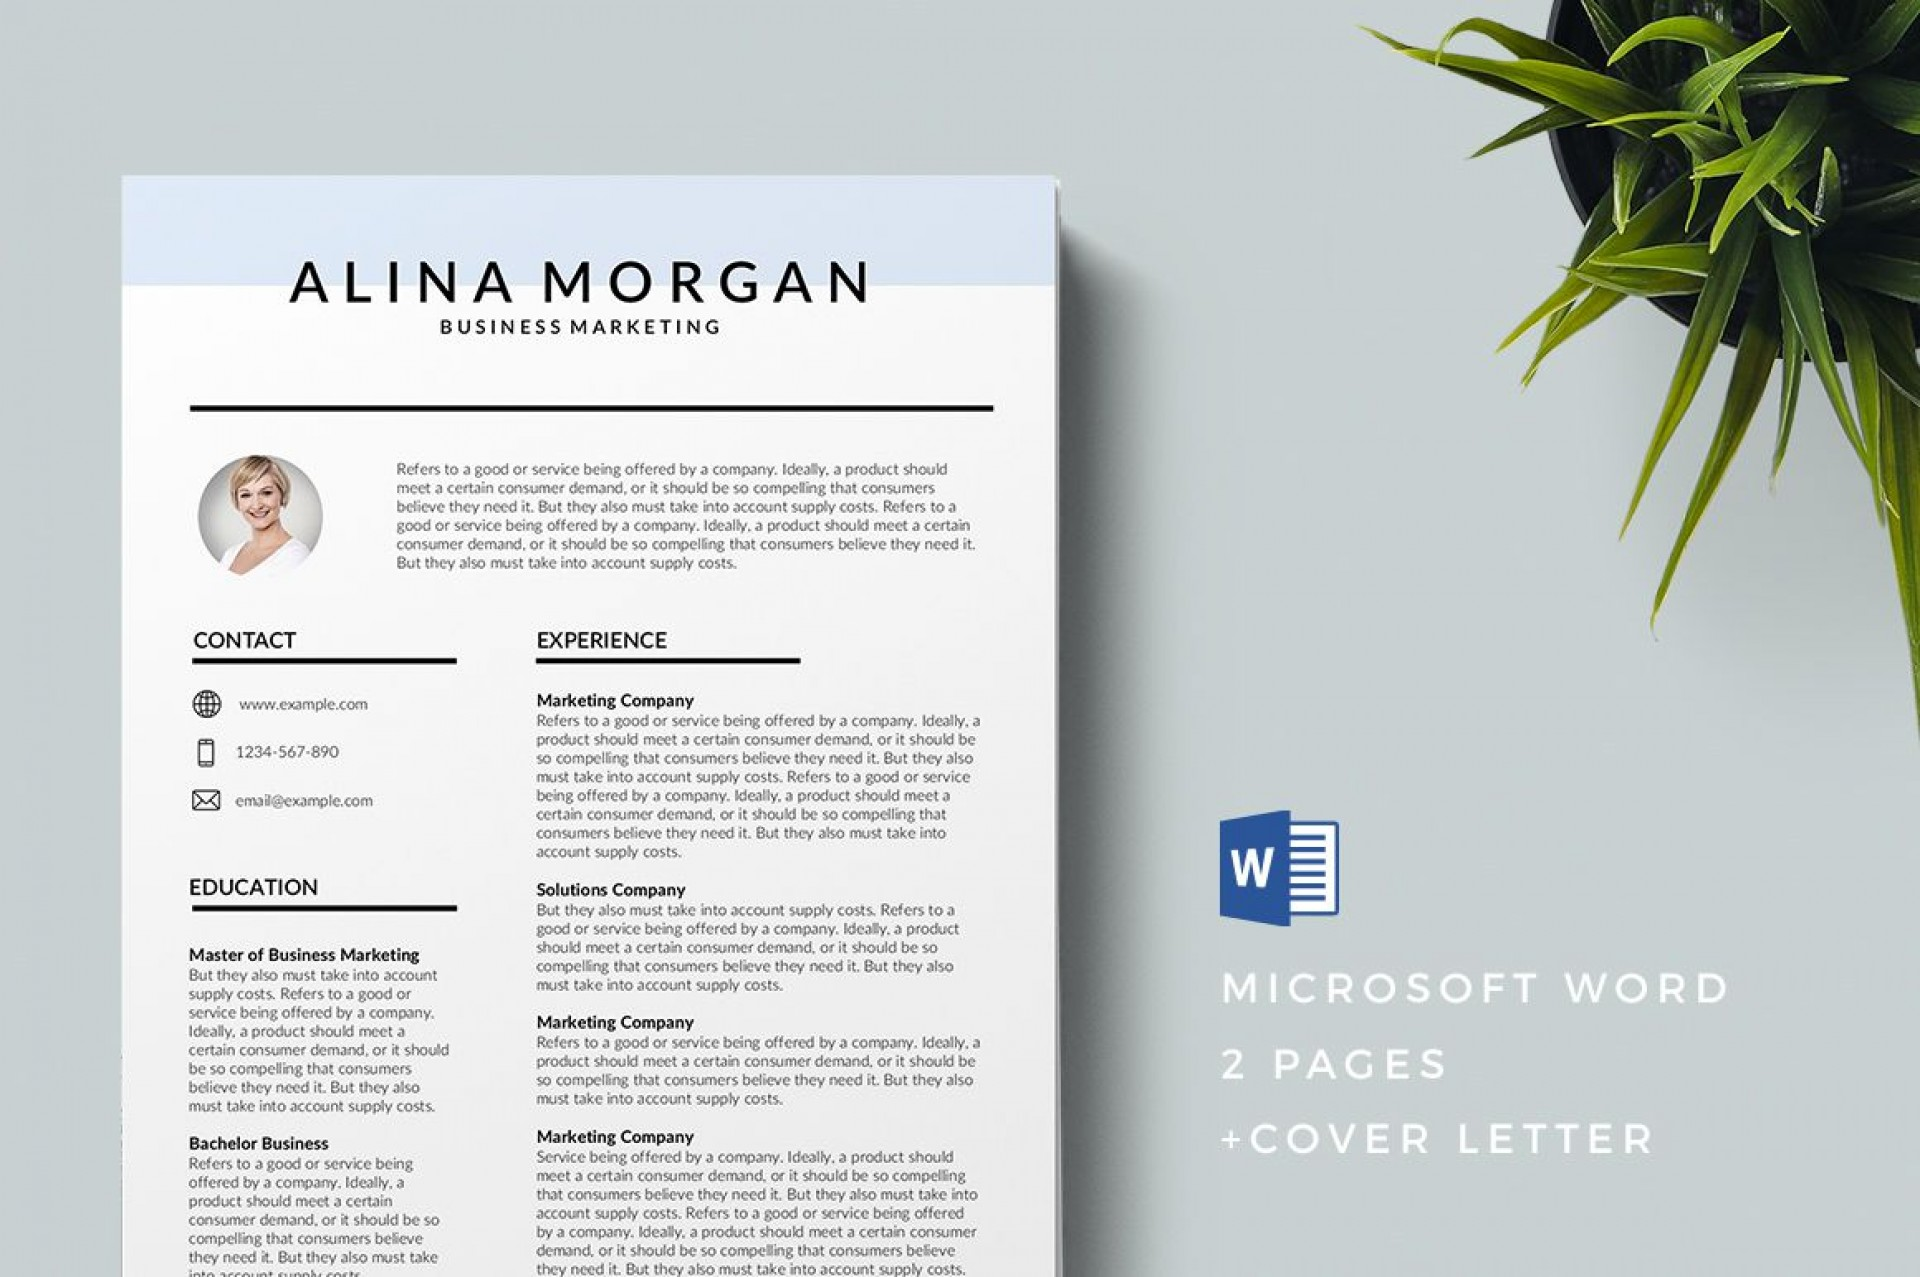 003 Fascinating Free Stylish Resume Template High Resolution  Templates Word Download1920